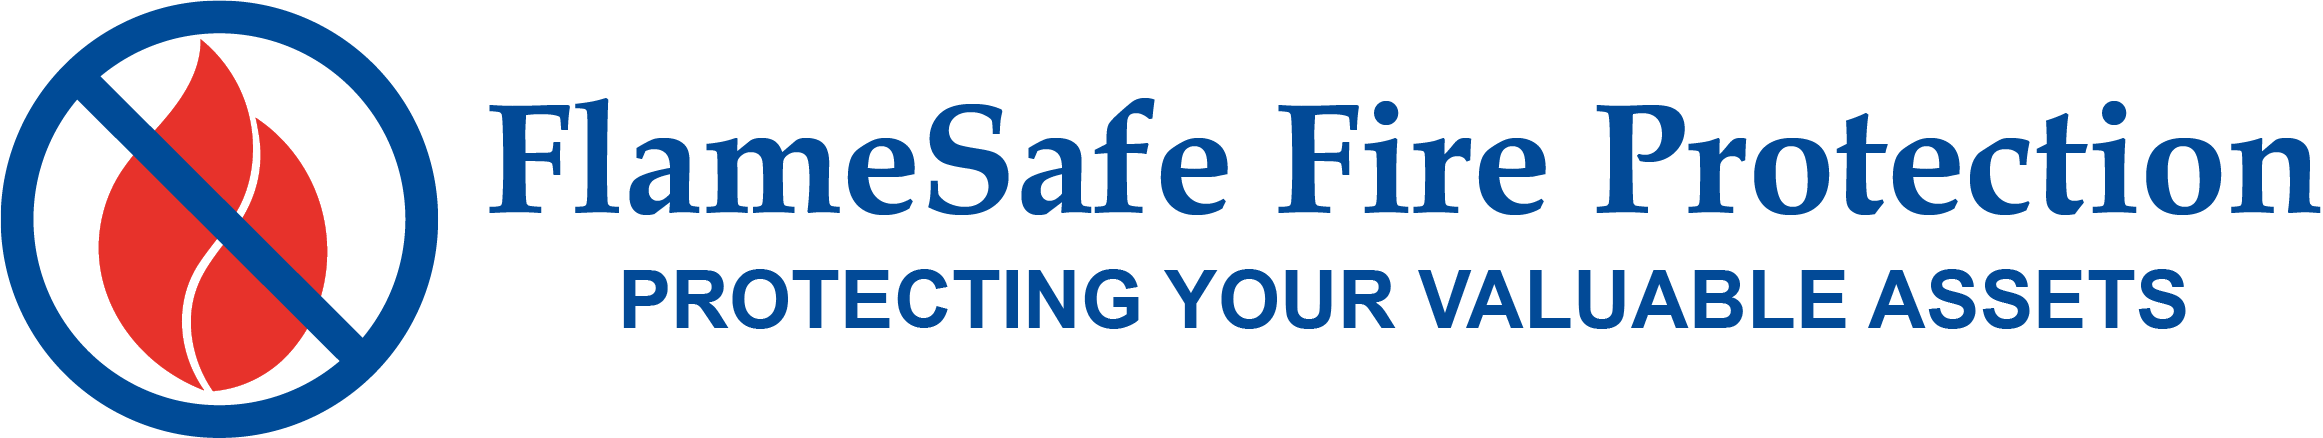 FlameSafe Fire Protection Banner Protecting Your Valuable Assets